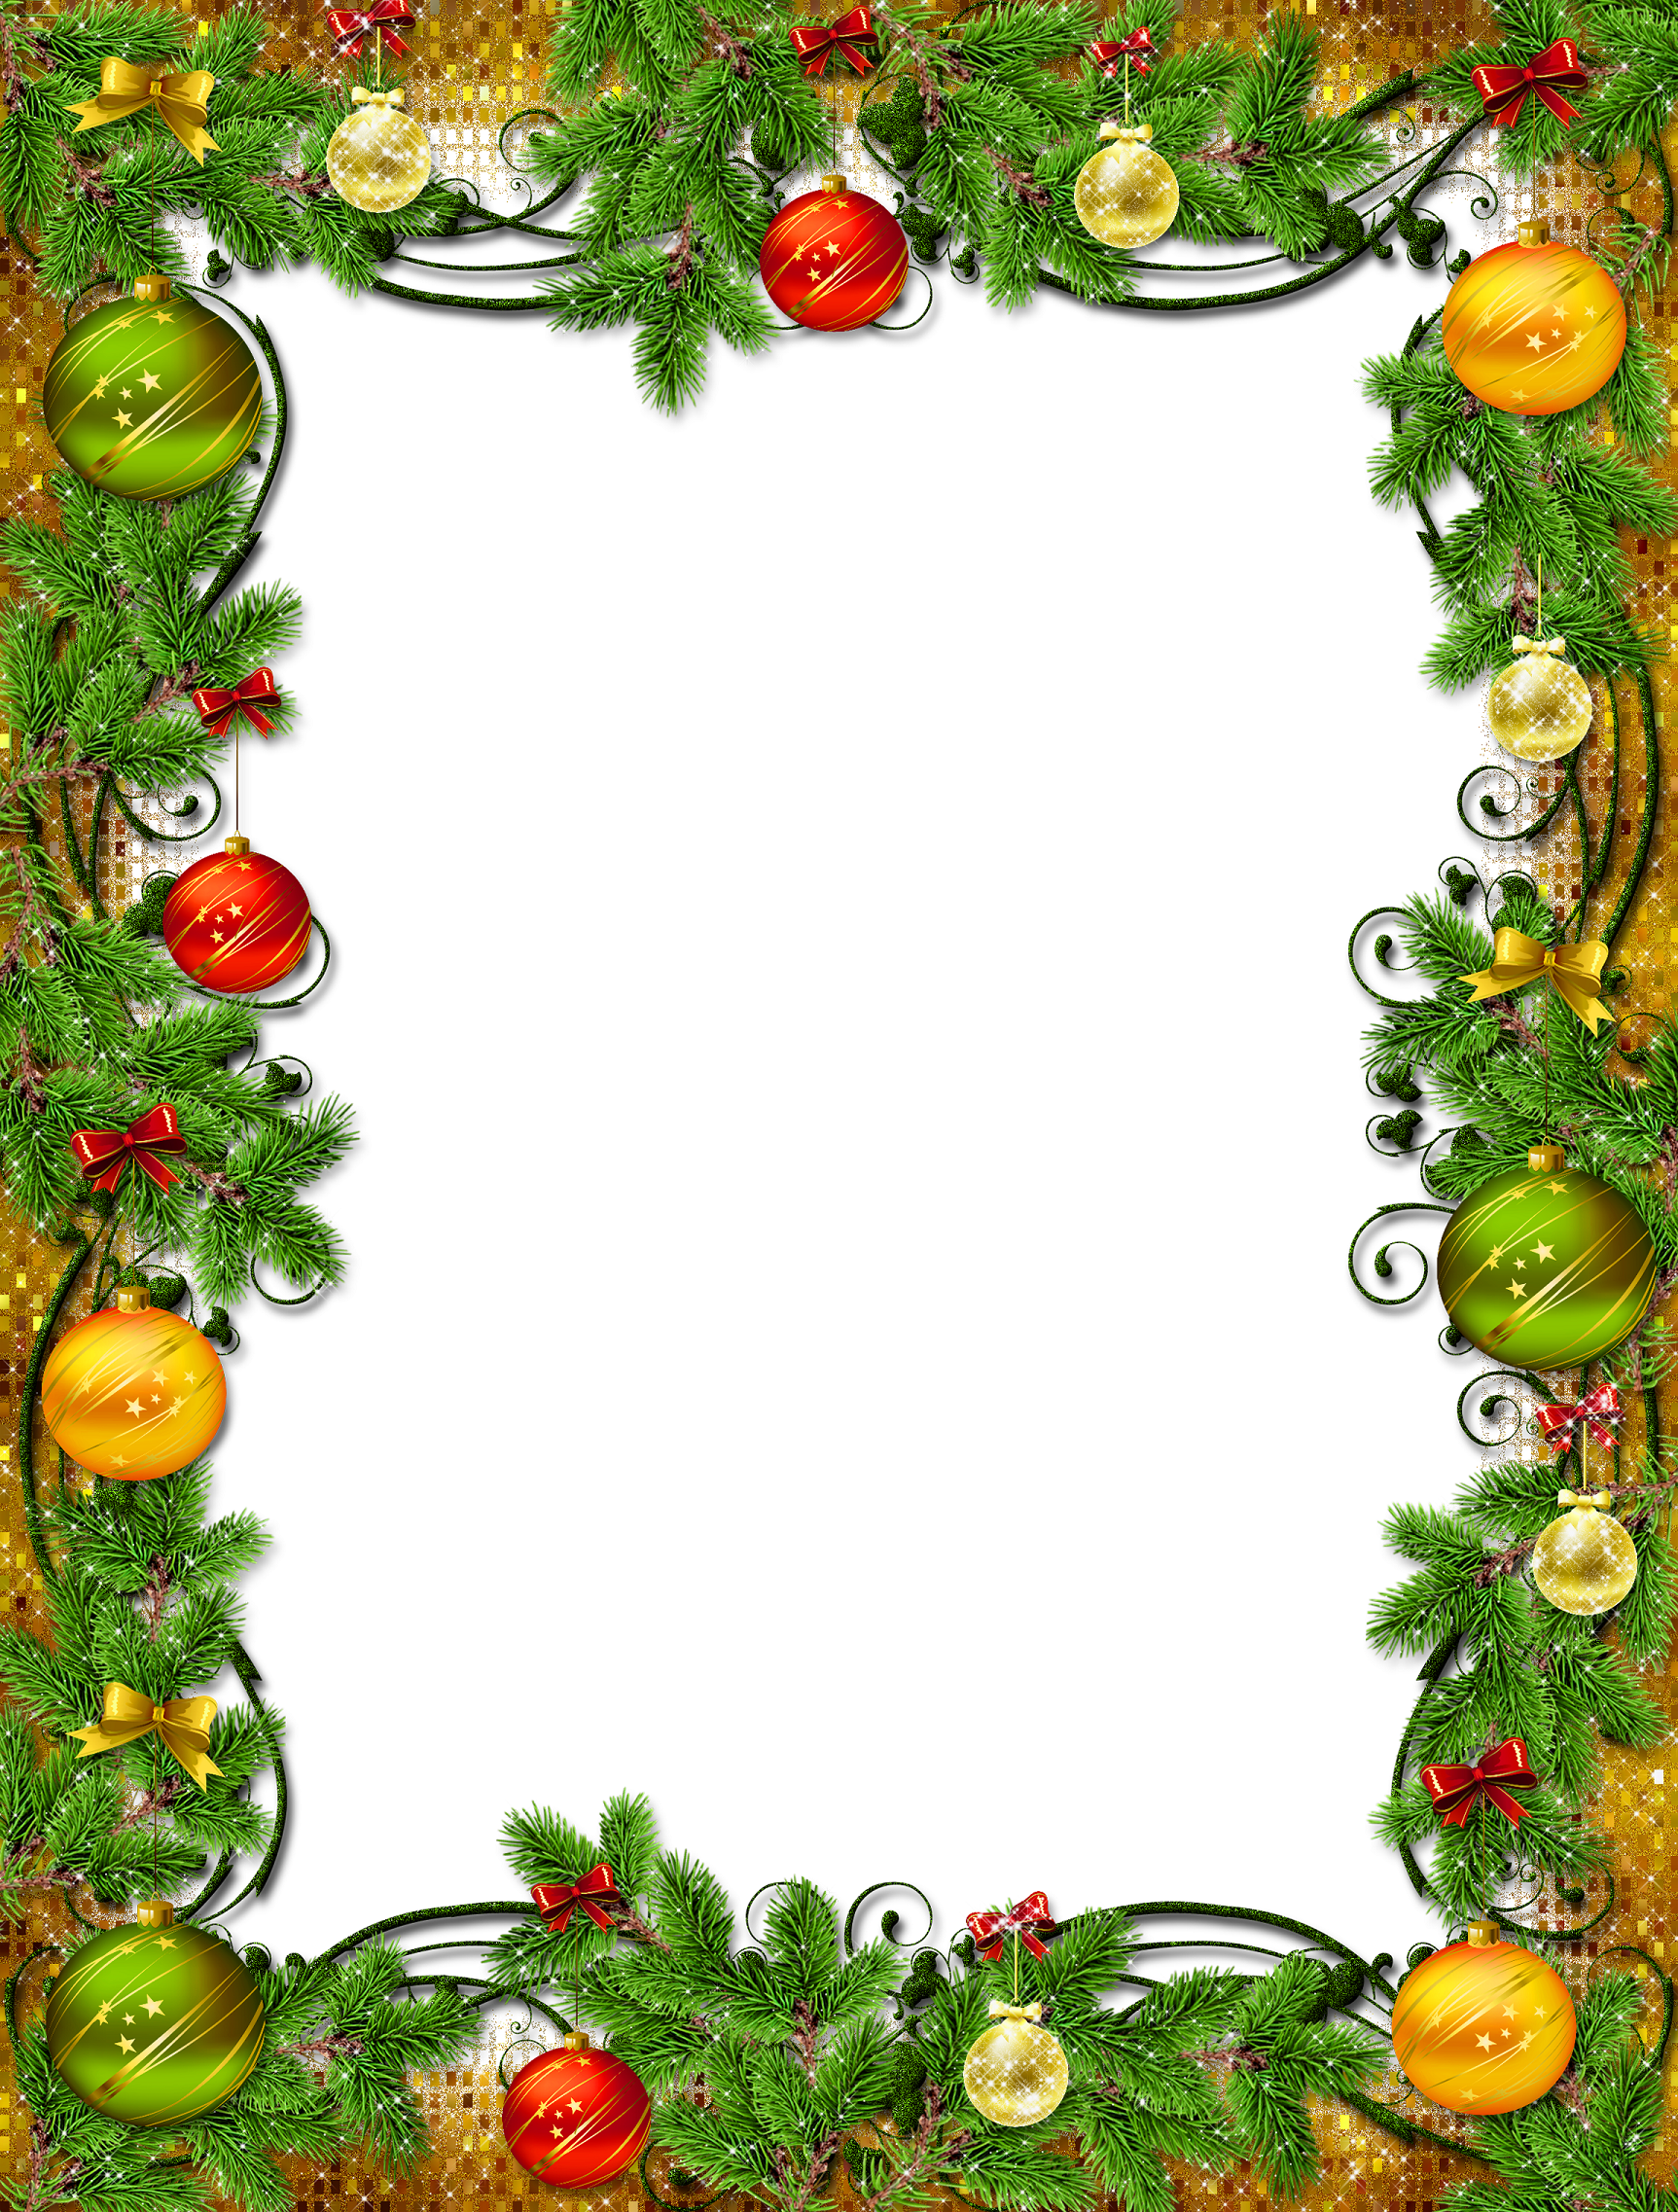 Vintage holiday border clipart clip art Christmas frame with ornaments and pine | Clip Art Holiday ... clip art